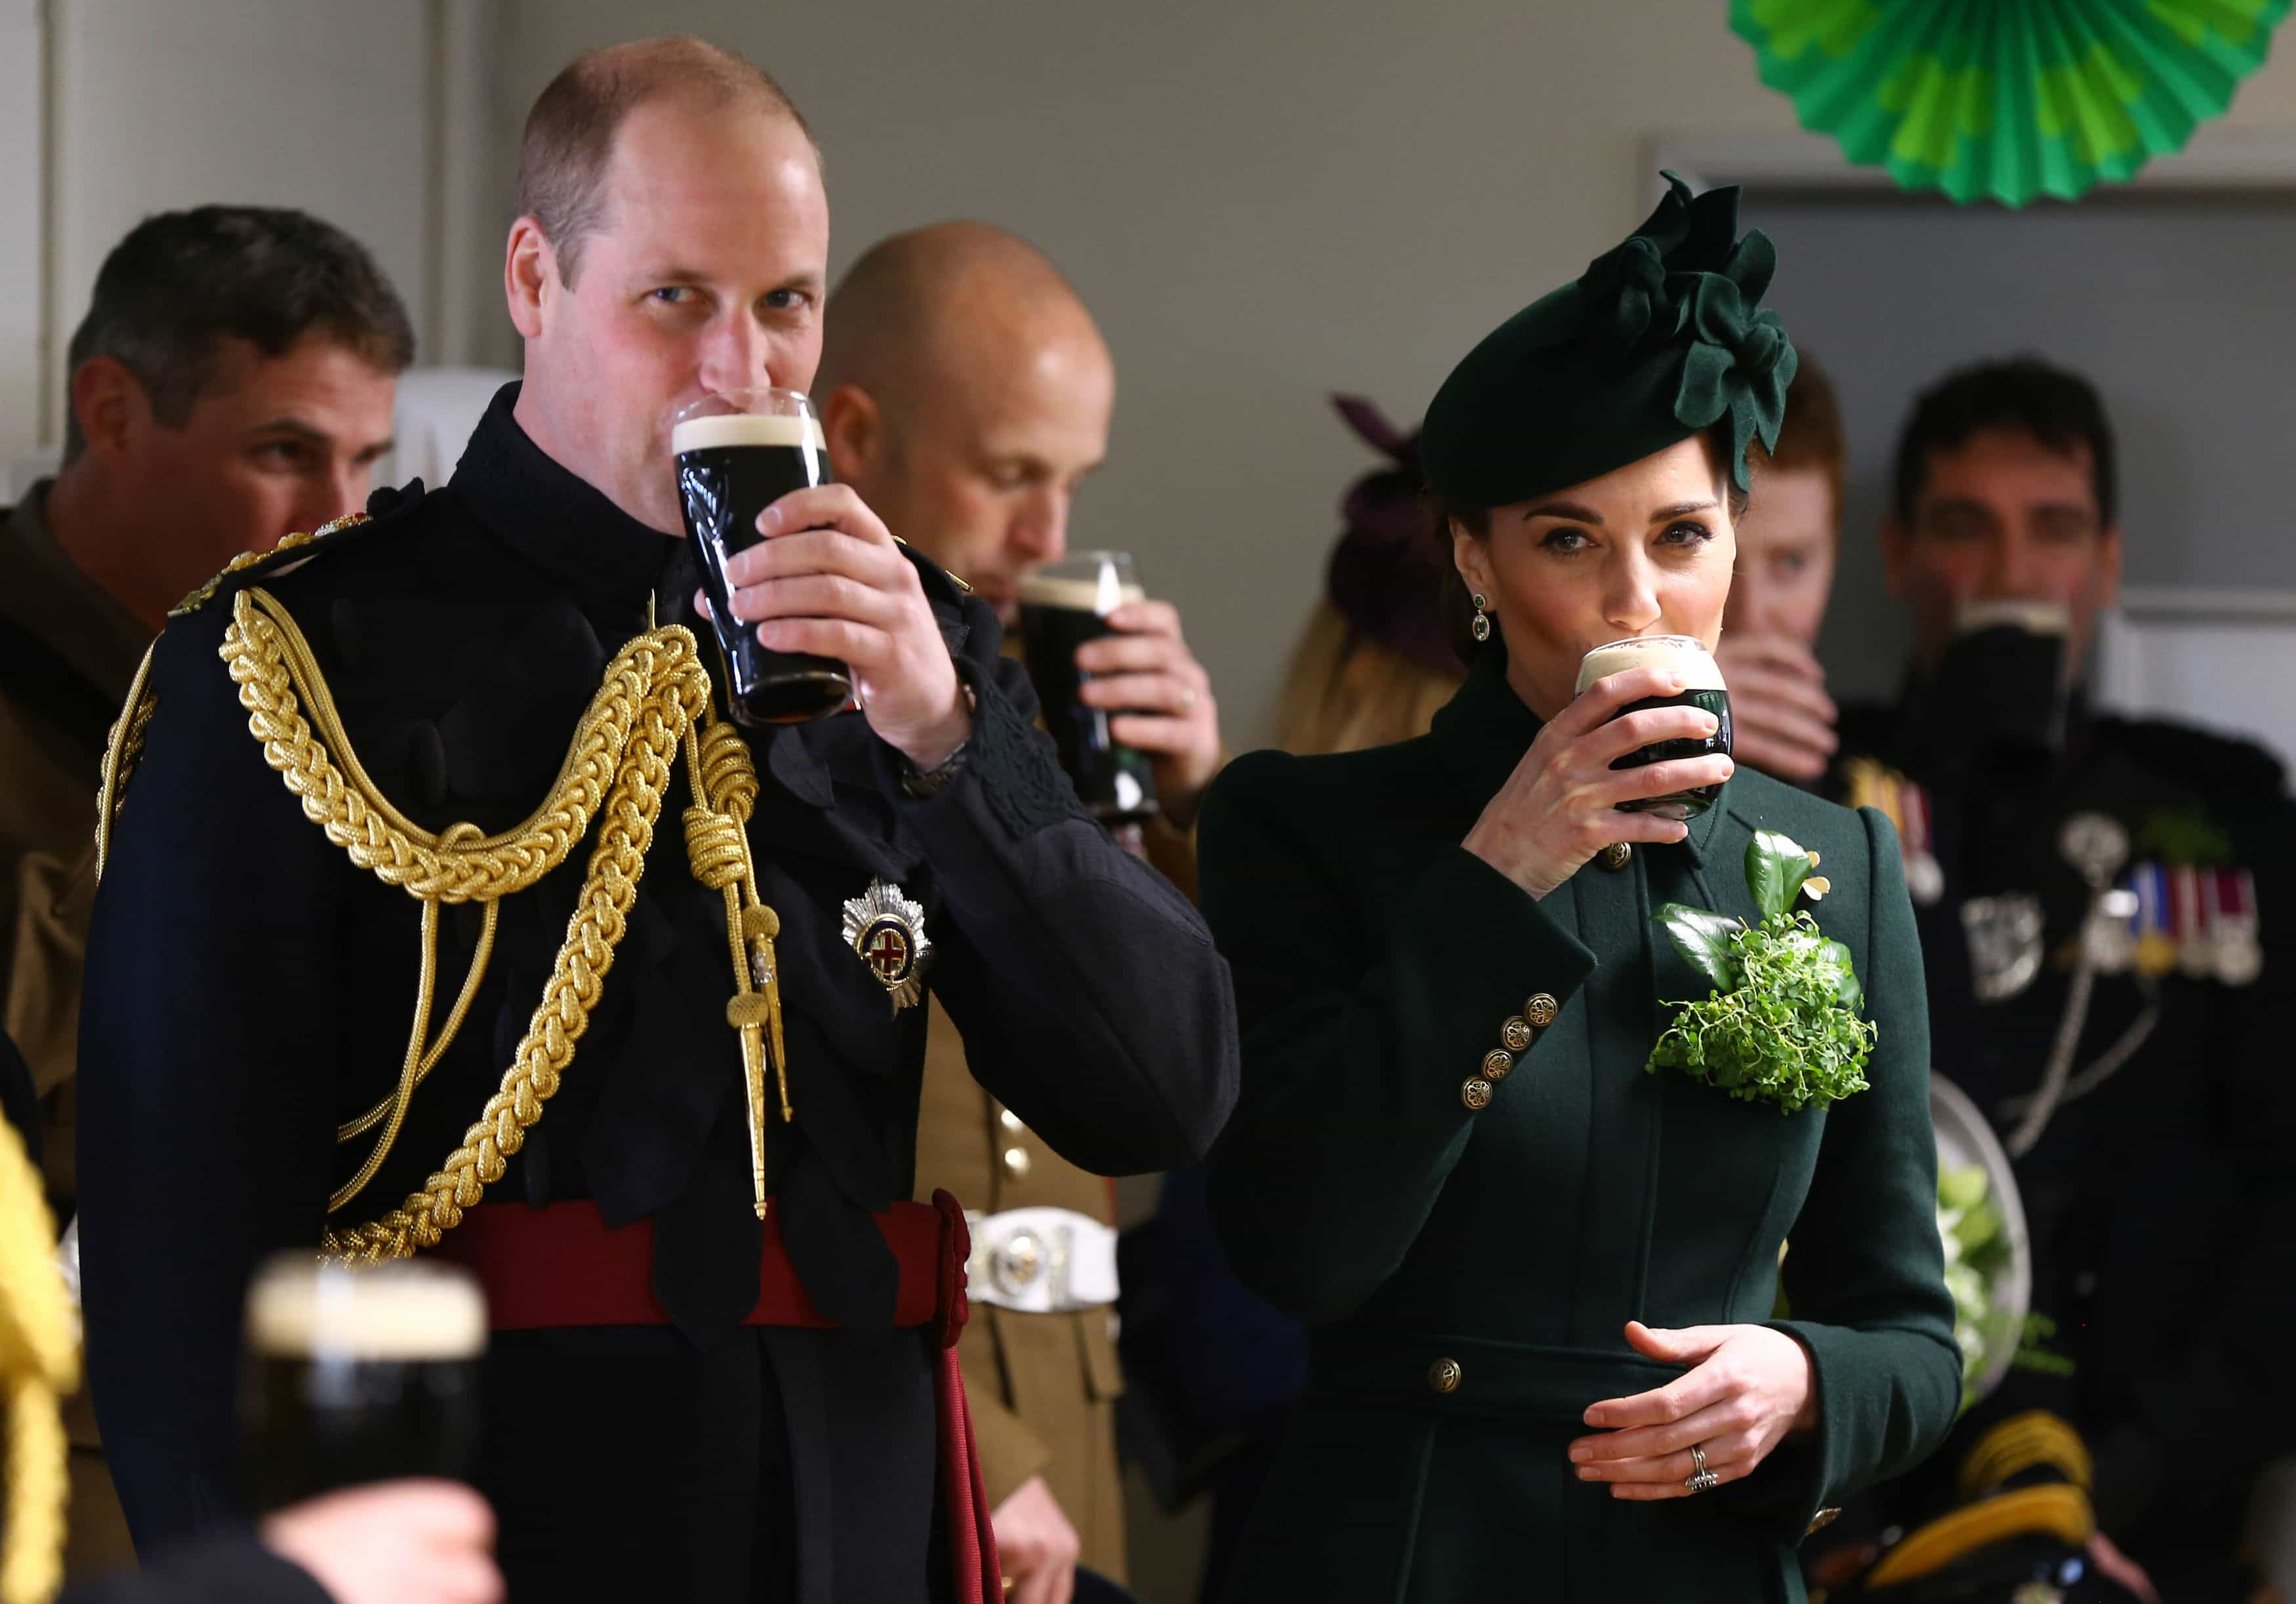 William e Kate Middleton festejam feriado bebendo cerveja; fotos